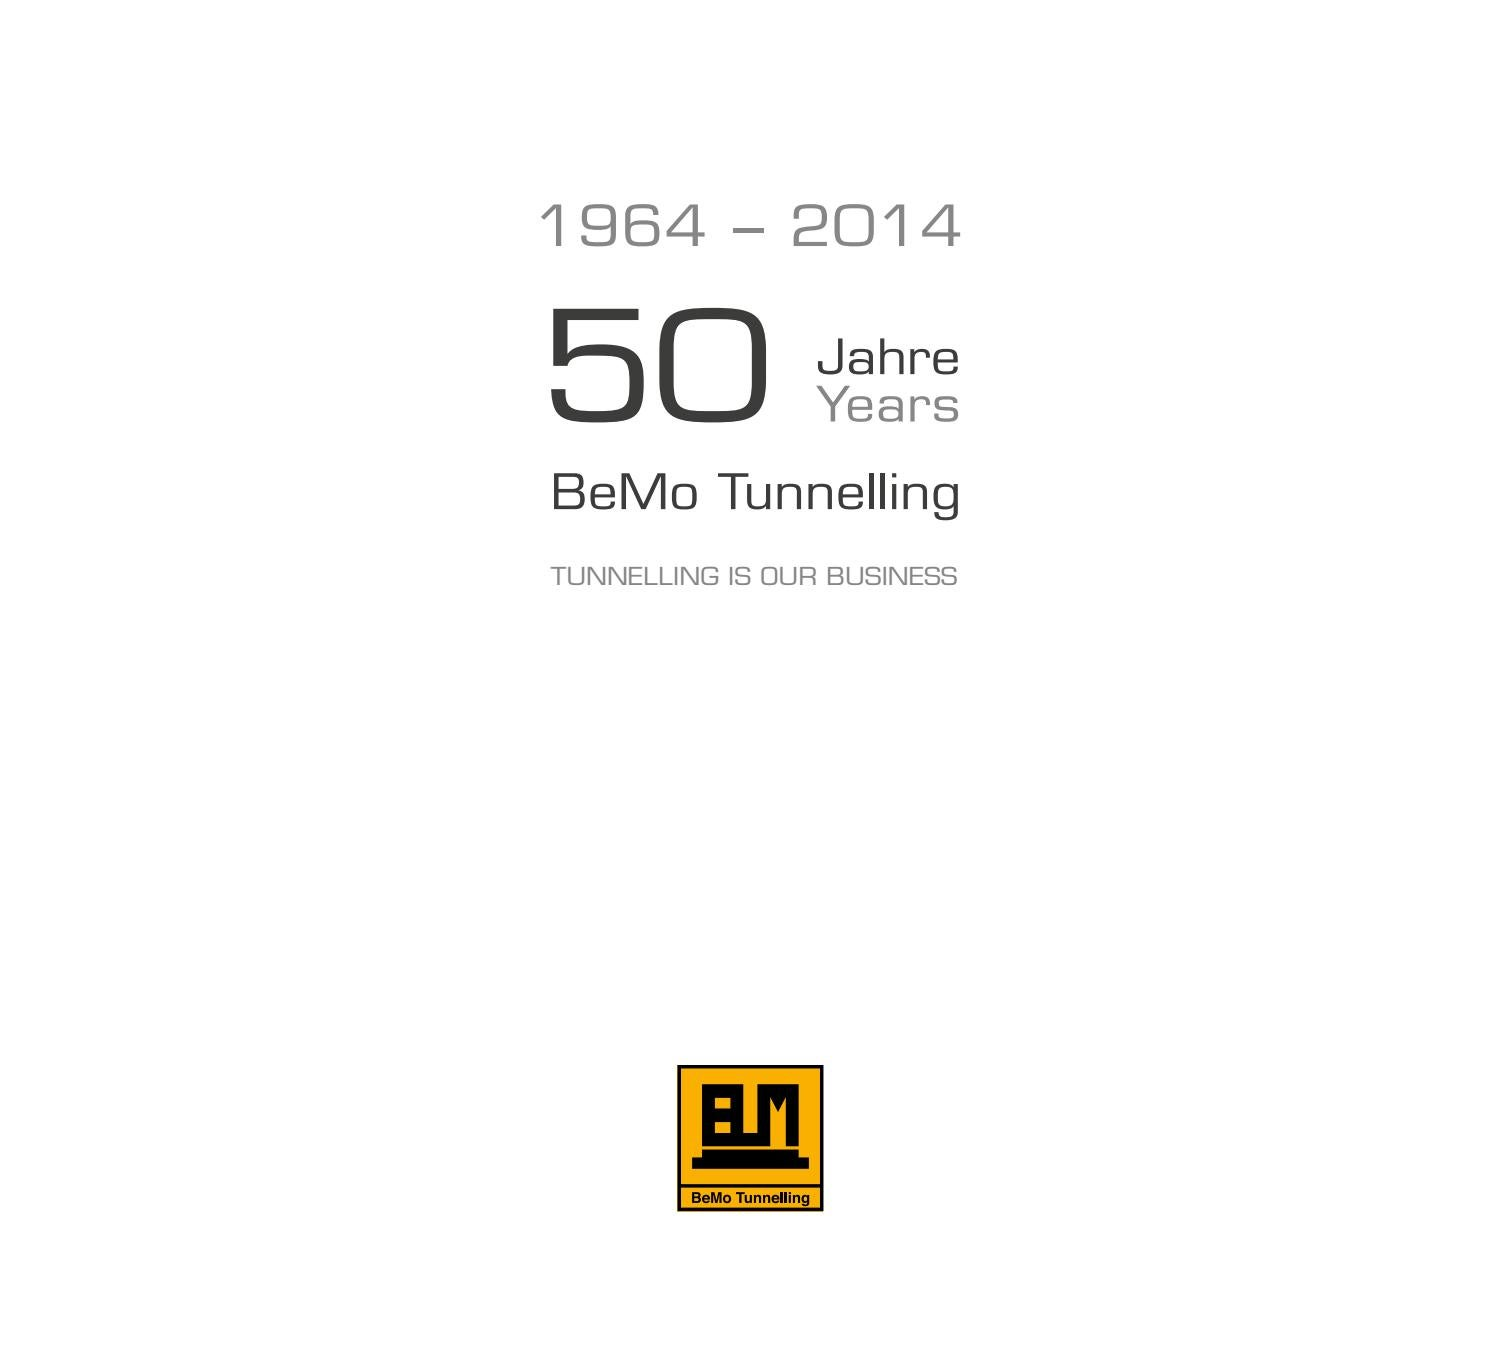 50 Jahre BeMo Tunneling by comdesign.net - issuu